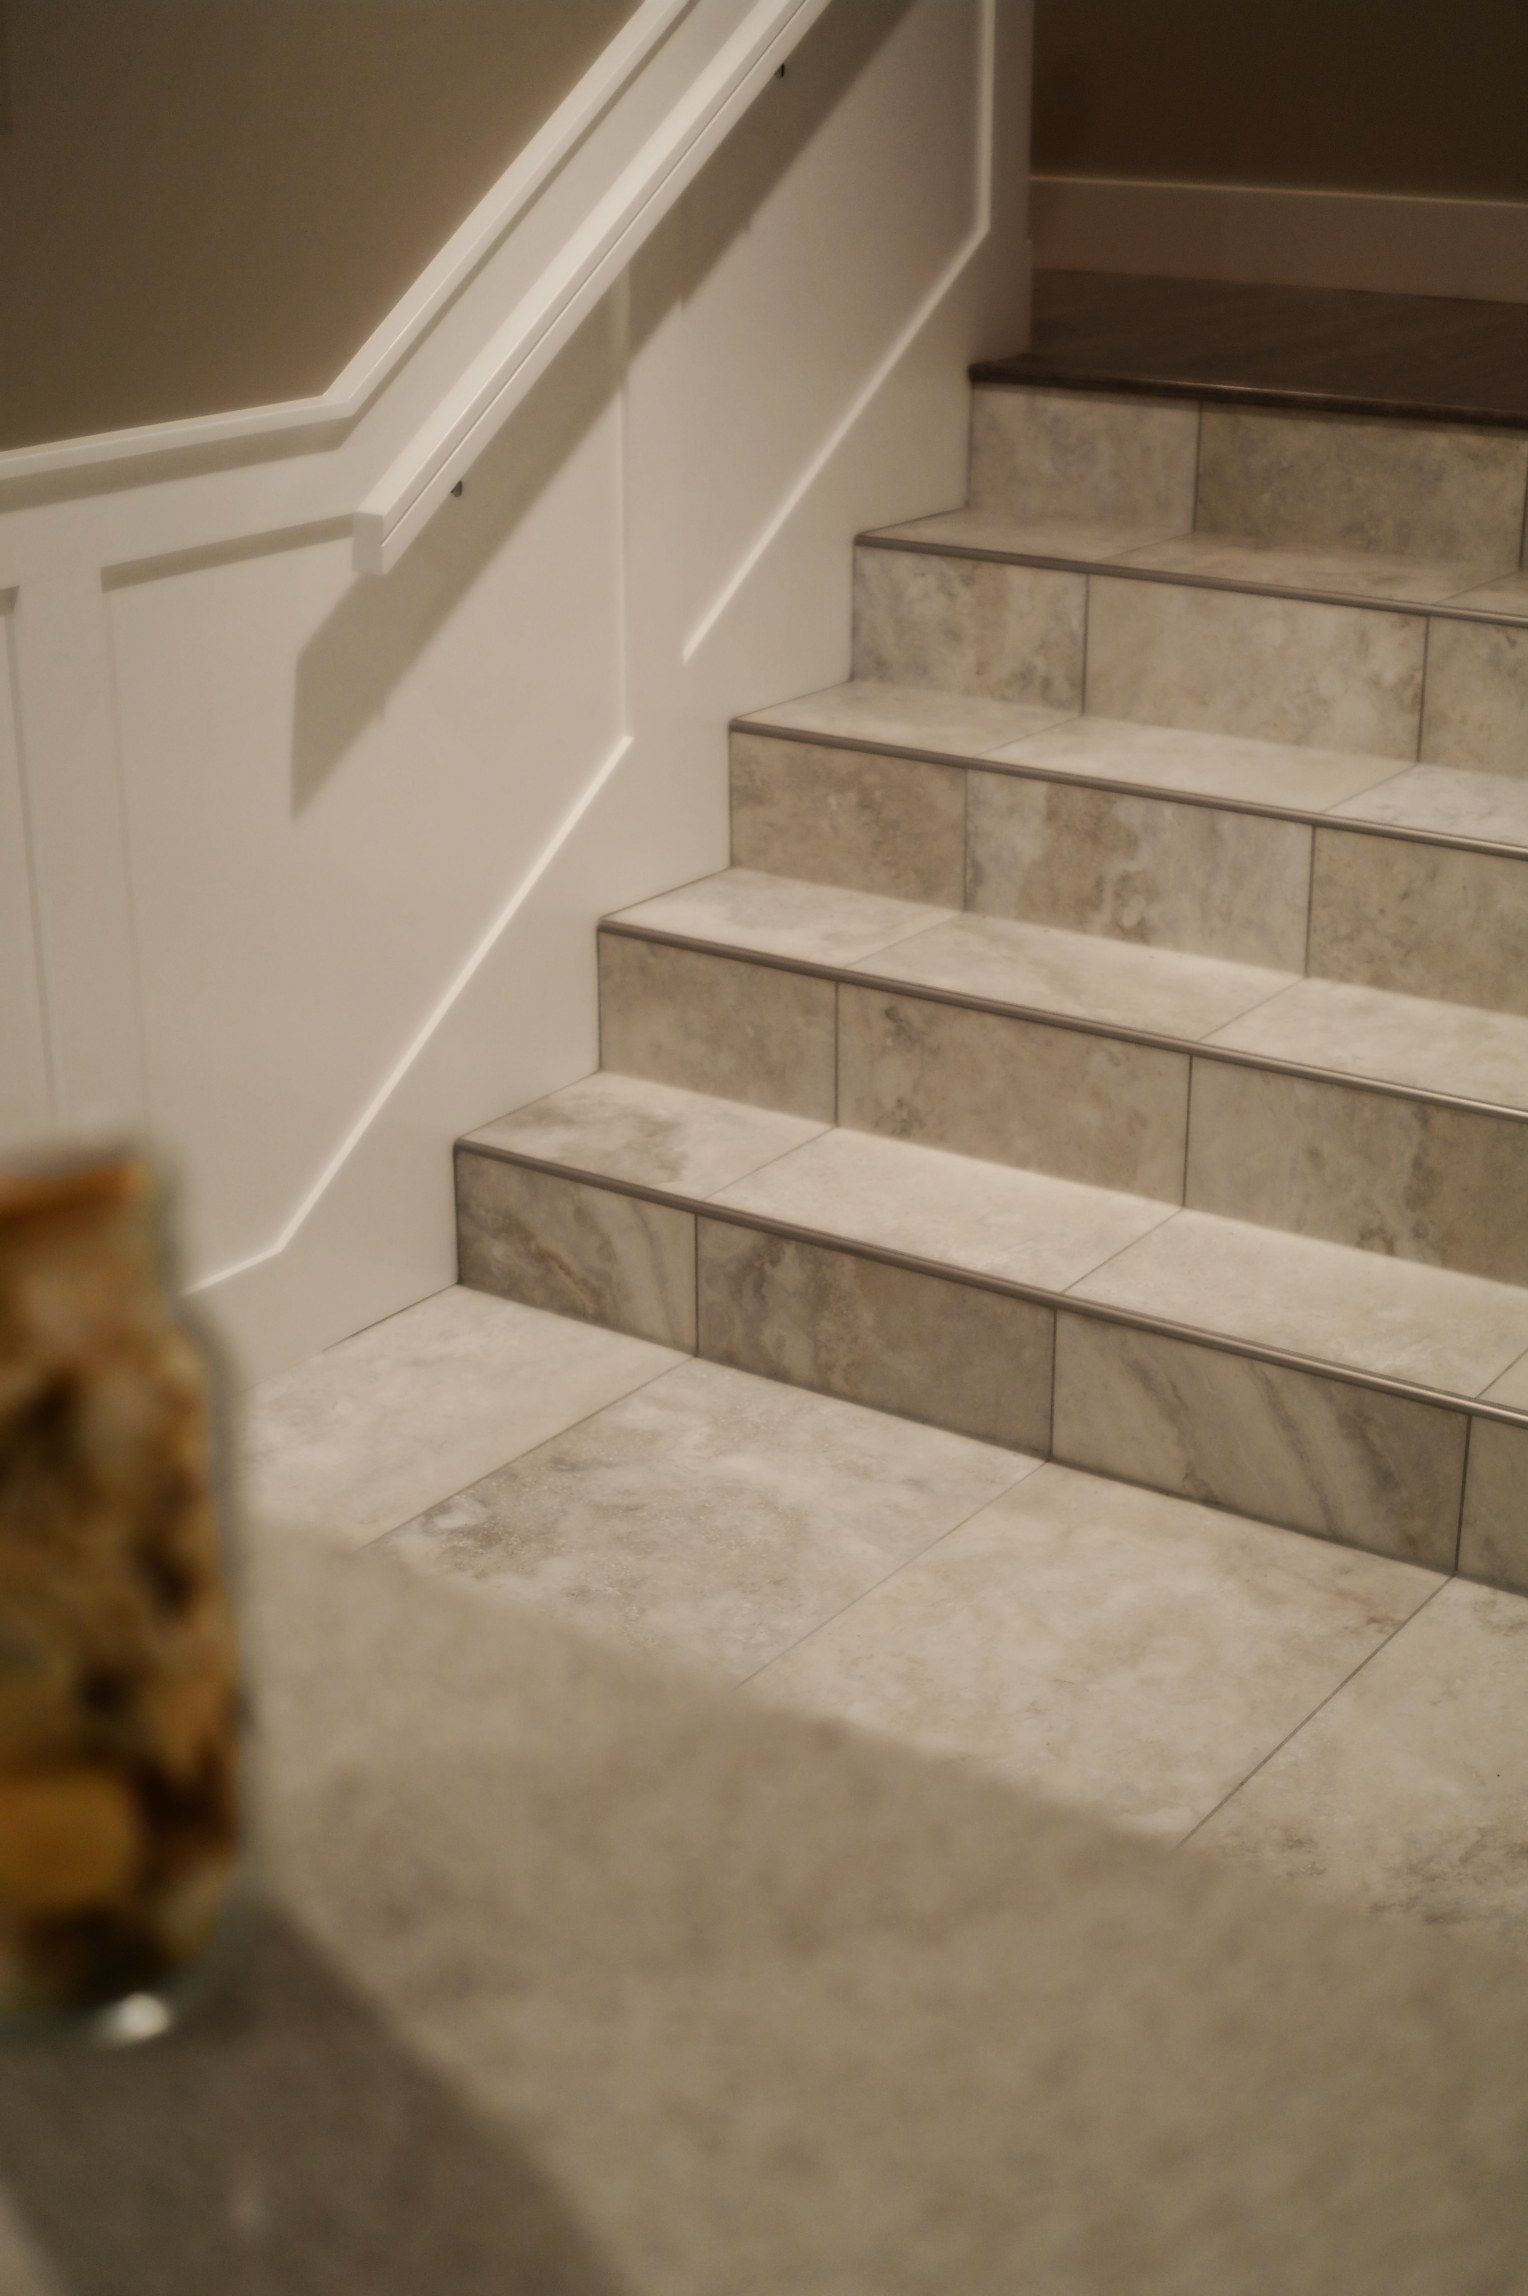 Tile on stairs can be a beautiful durable alternative for Durable carpet for stairs